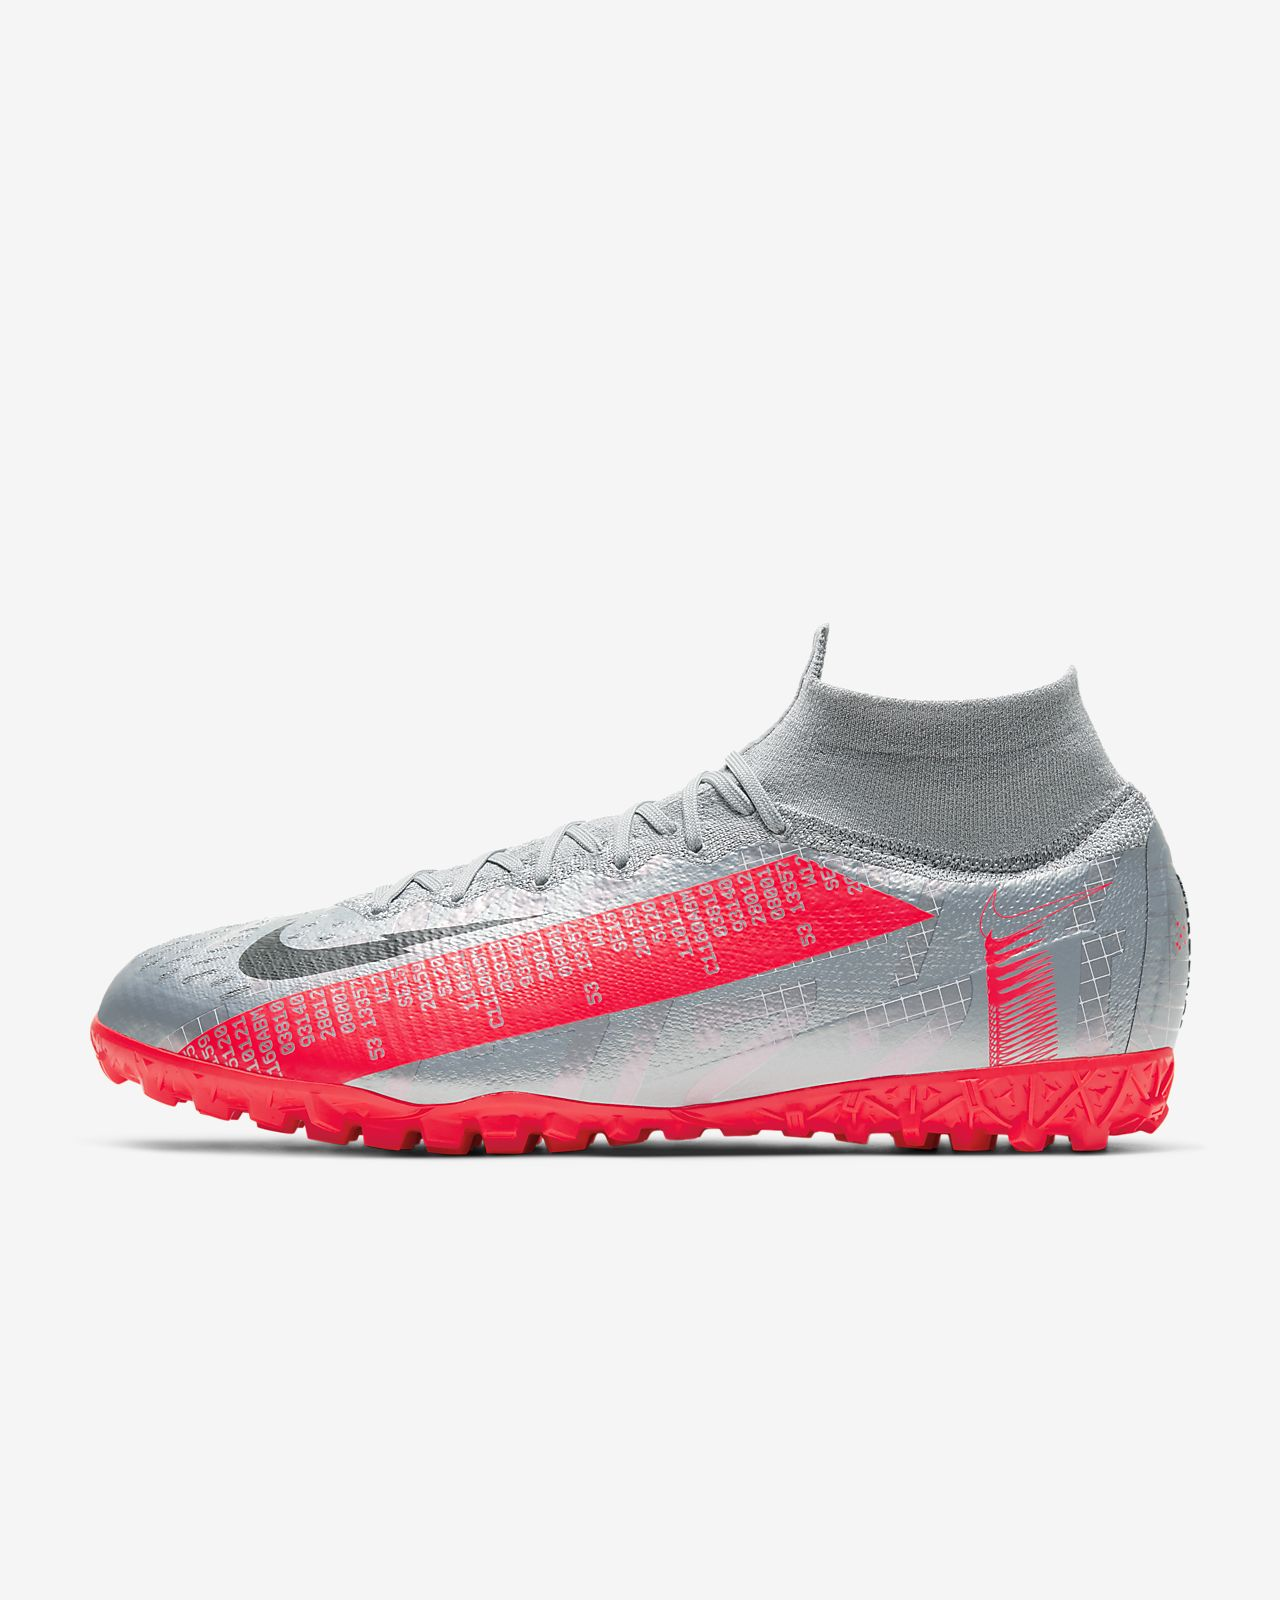 Nike Mercurial Superfly 7 Elite TF Voetbalschoen (turf)